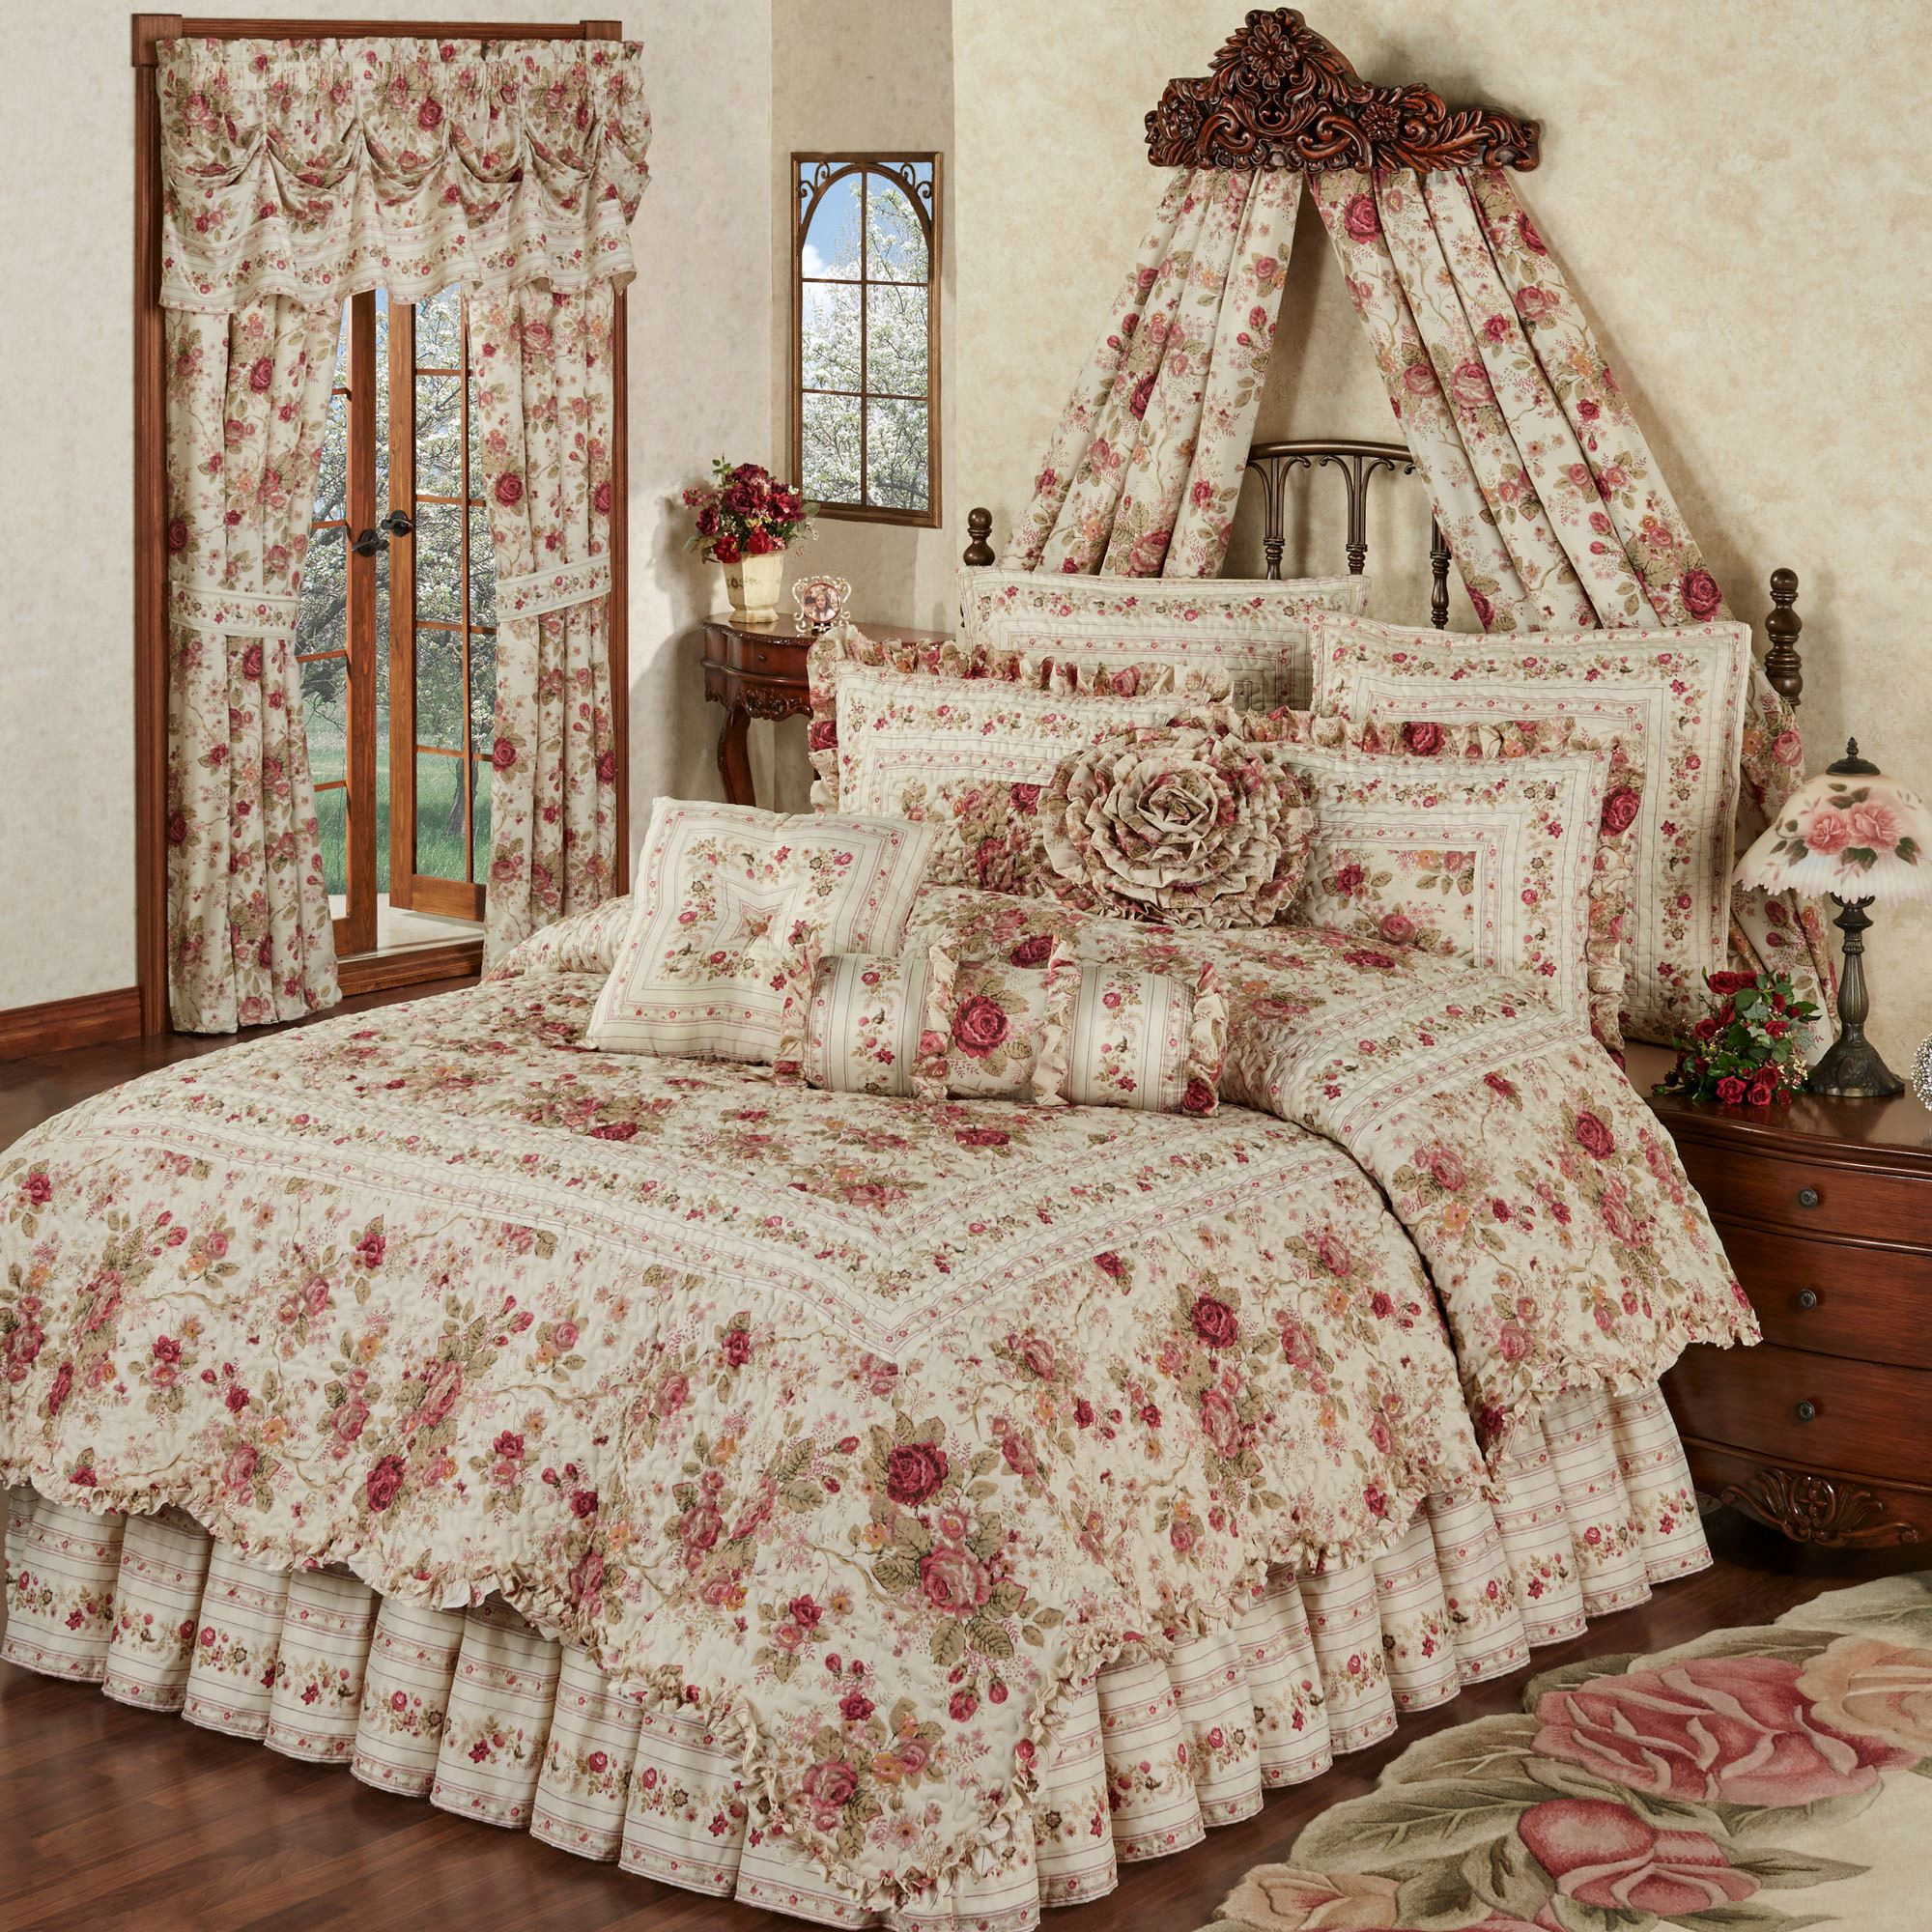 Best ideas about Roses Bedroom Set . Save or Pin Heirloom Rose 4 pc Floral Quilt Set Now.